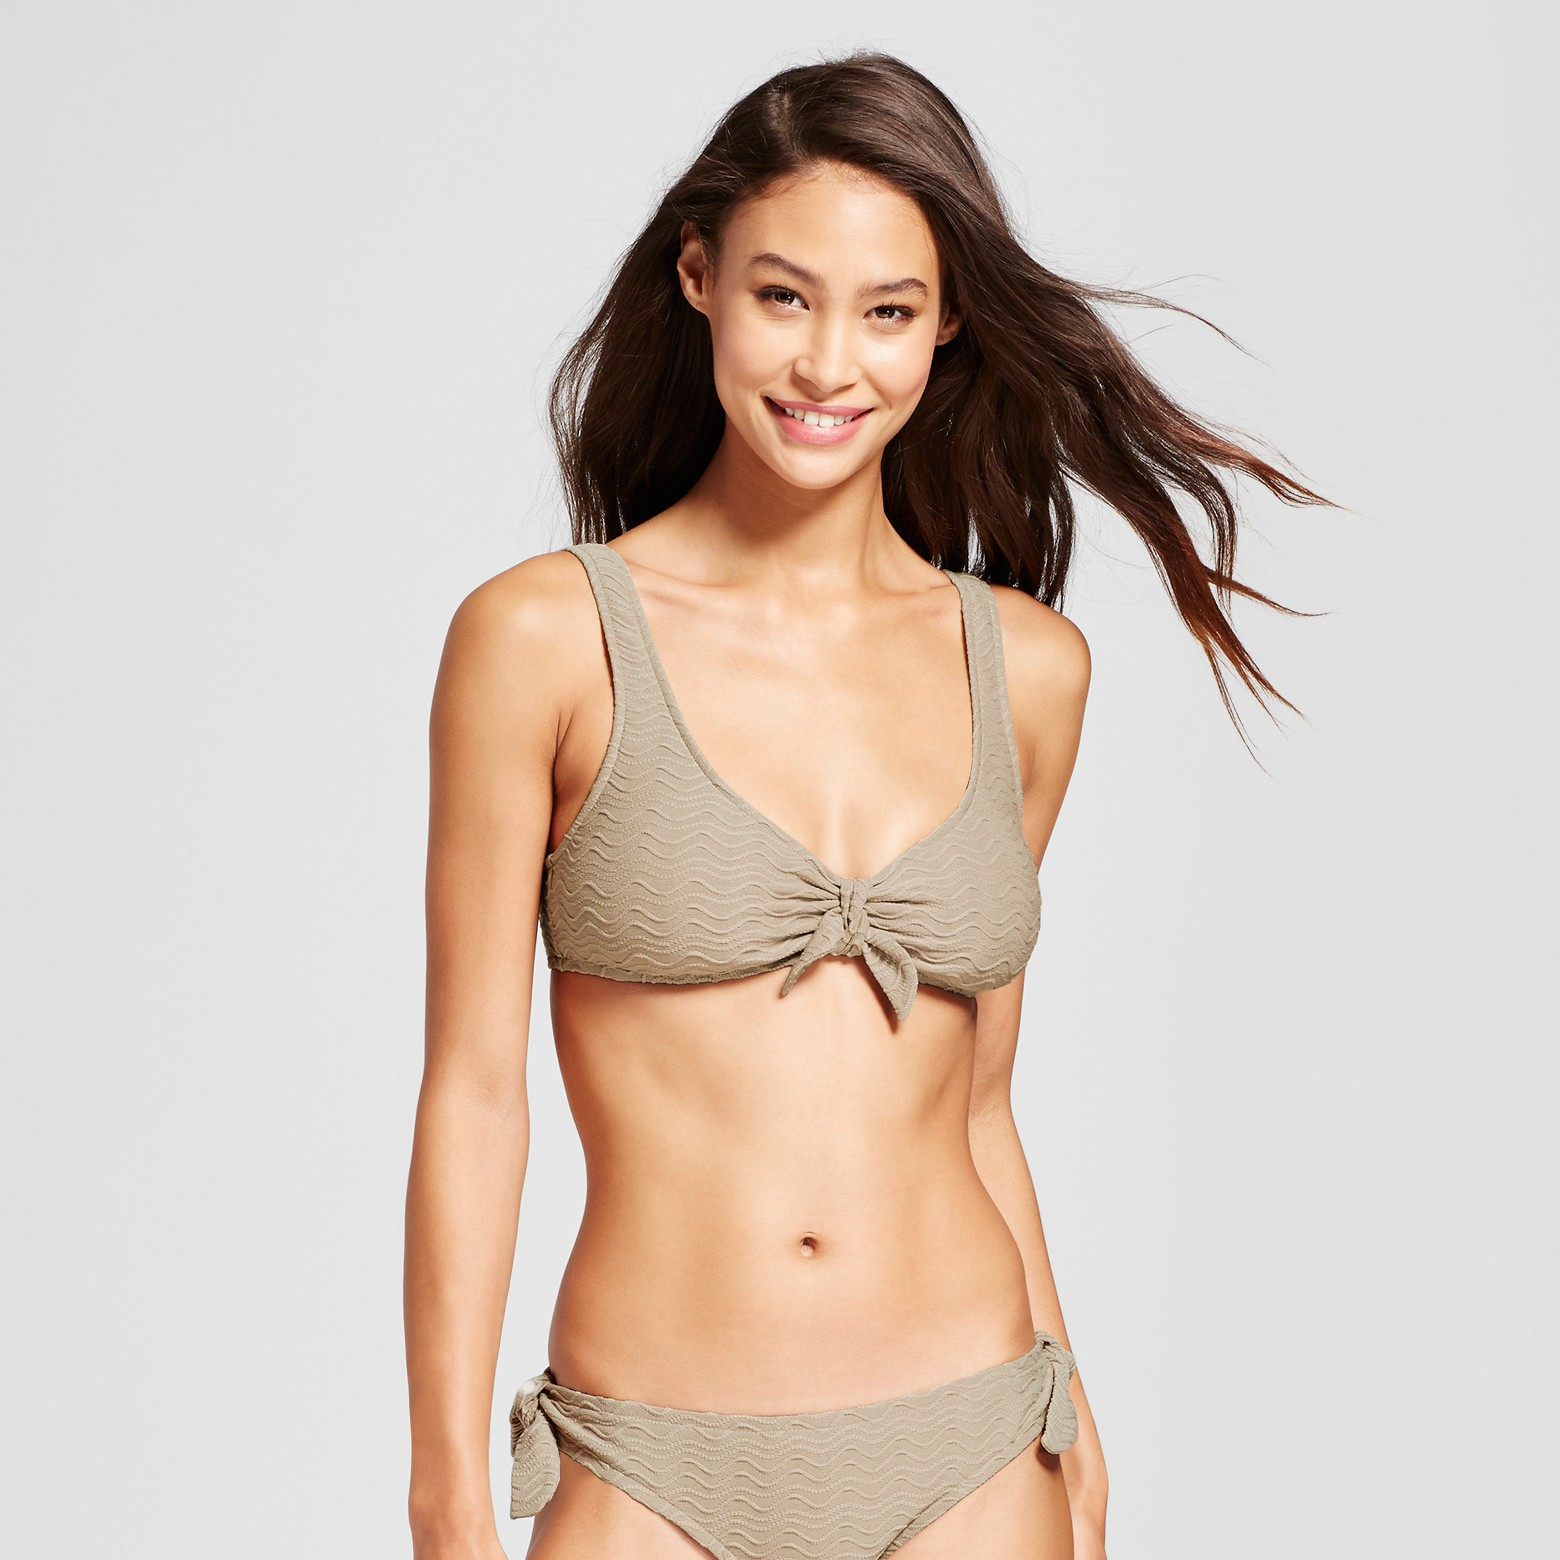 This is one of the cutest spring break bathing suits